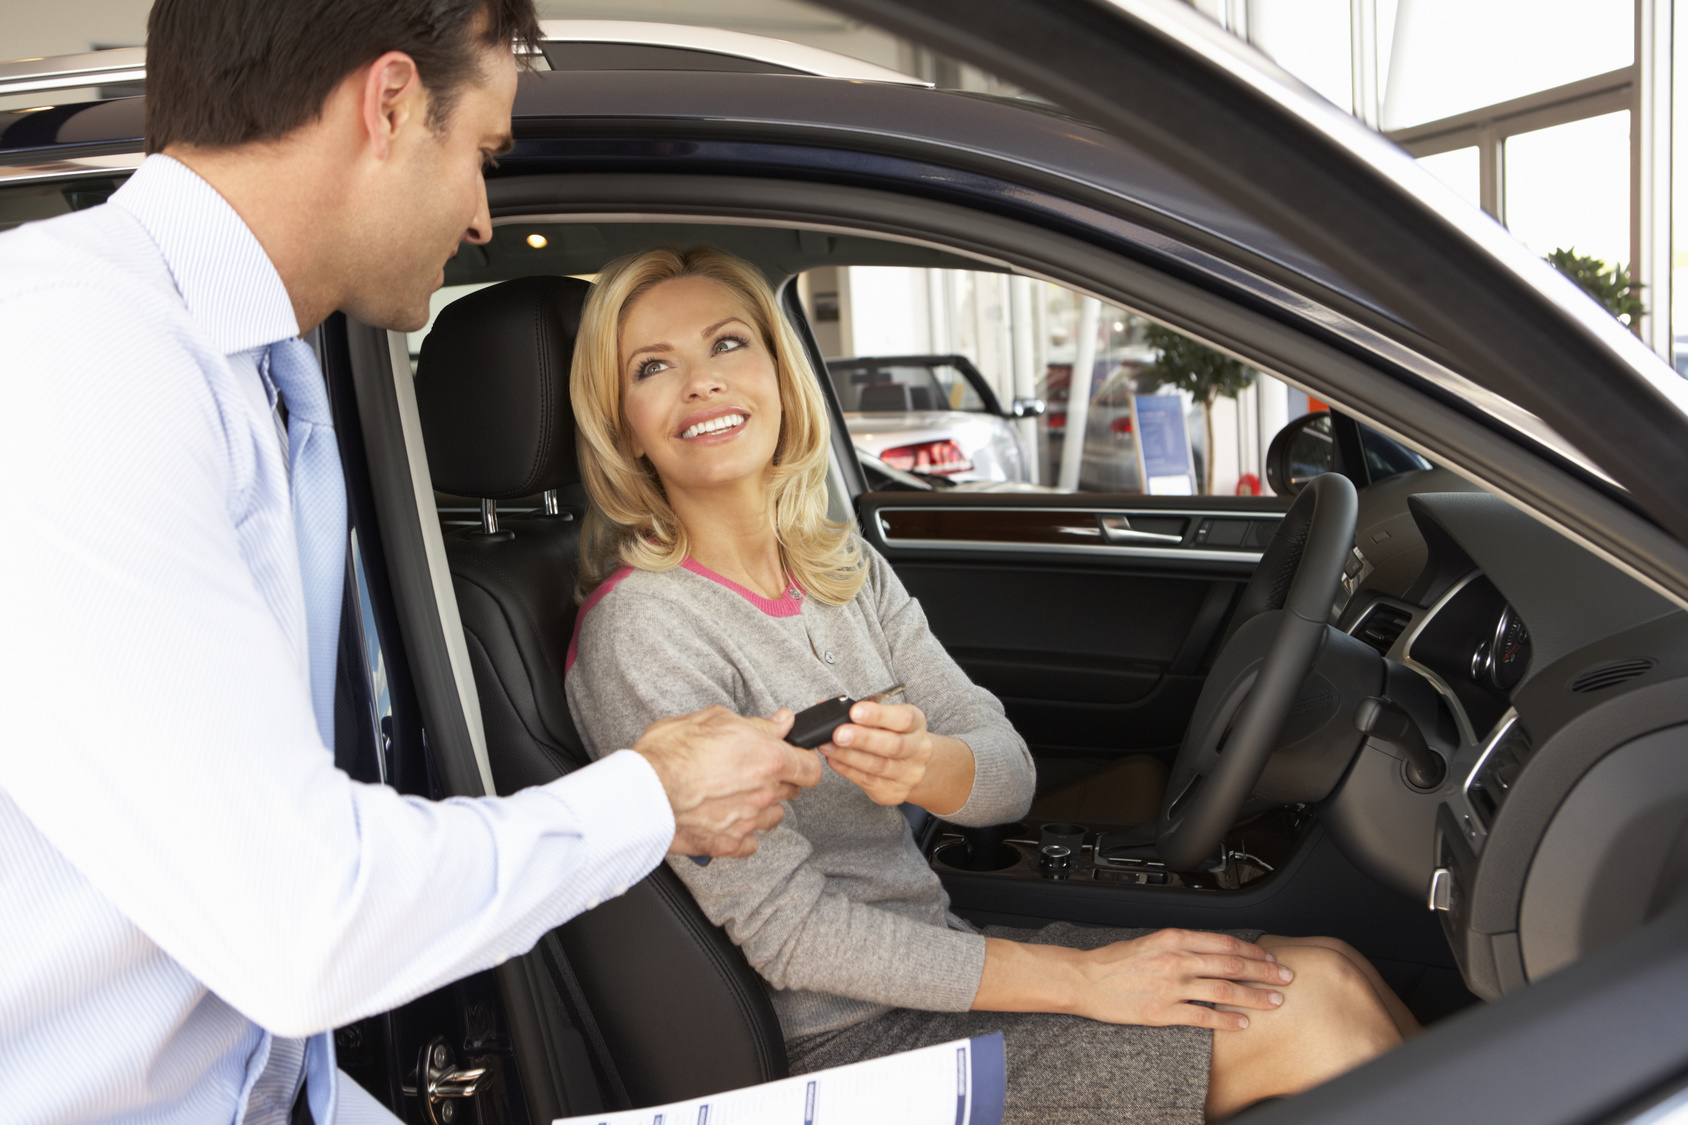 Leasing a Car? Make Sure It Is Properly Protected